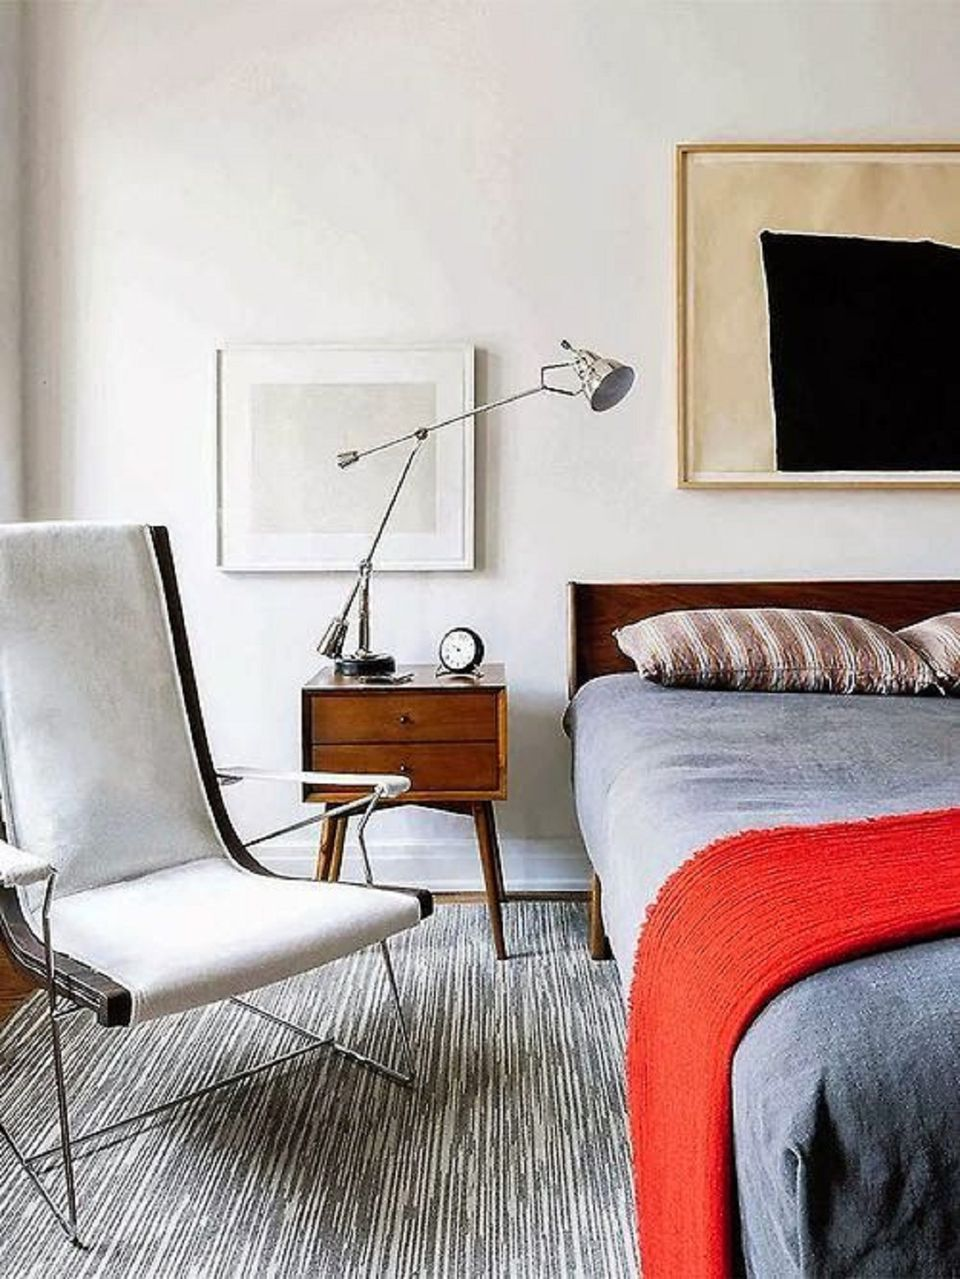 Midcentury modern bedroom decorating ideas Mid century modern design ideas